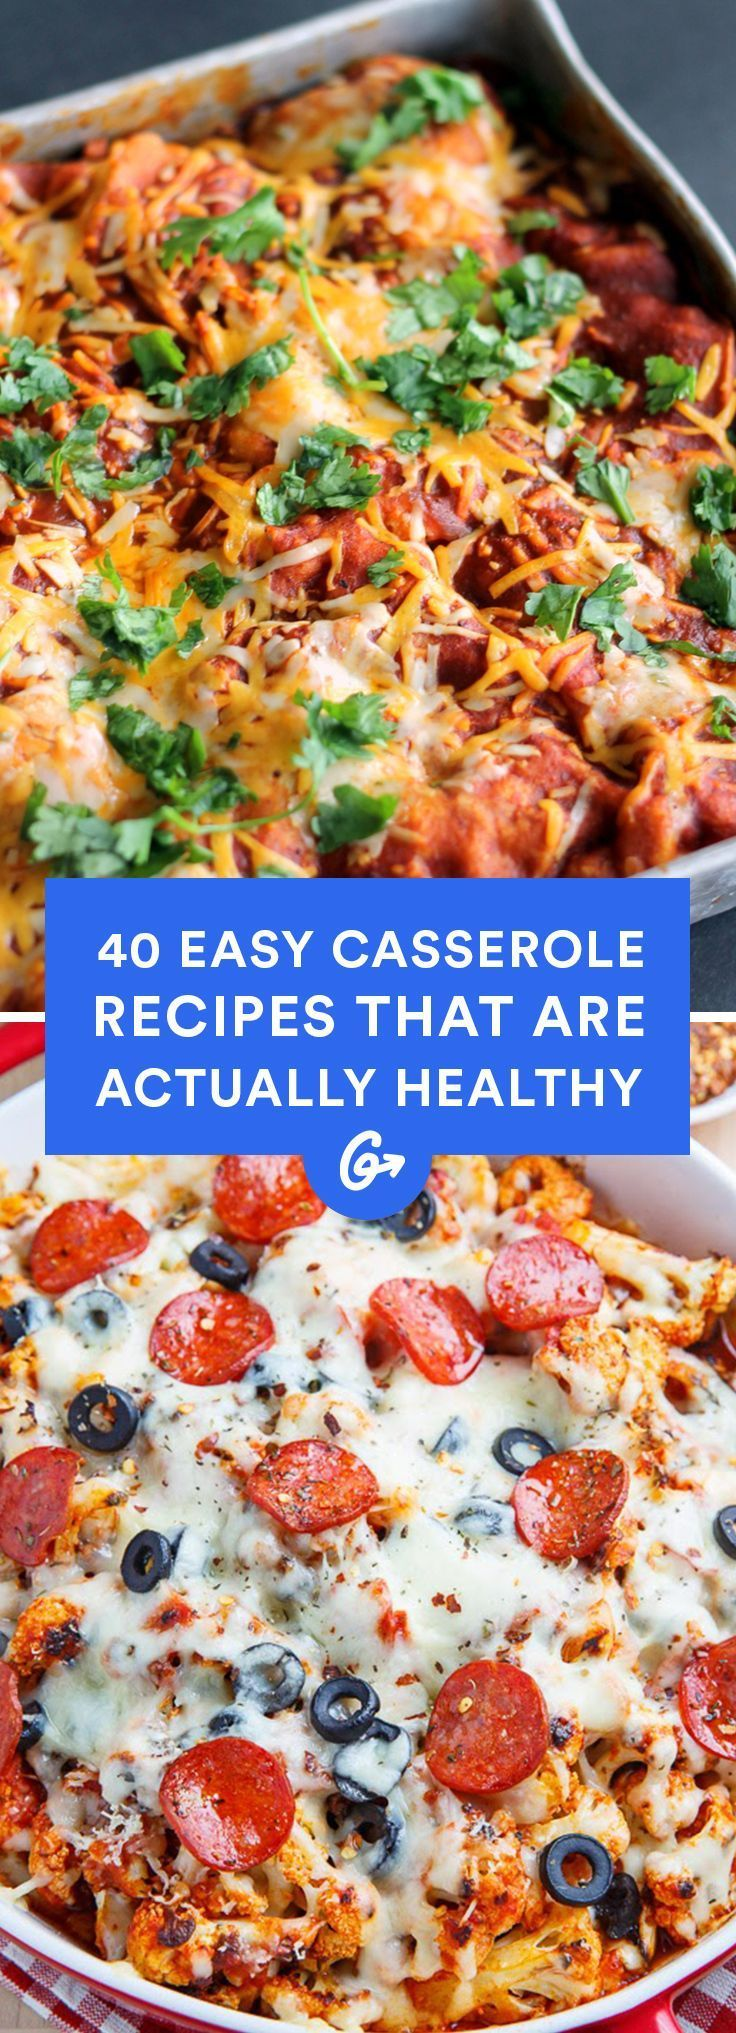 40 Easy Casserole Recipes That Are Actually Healthy #easy #healthy #casseroles greatist.com/...